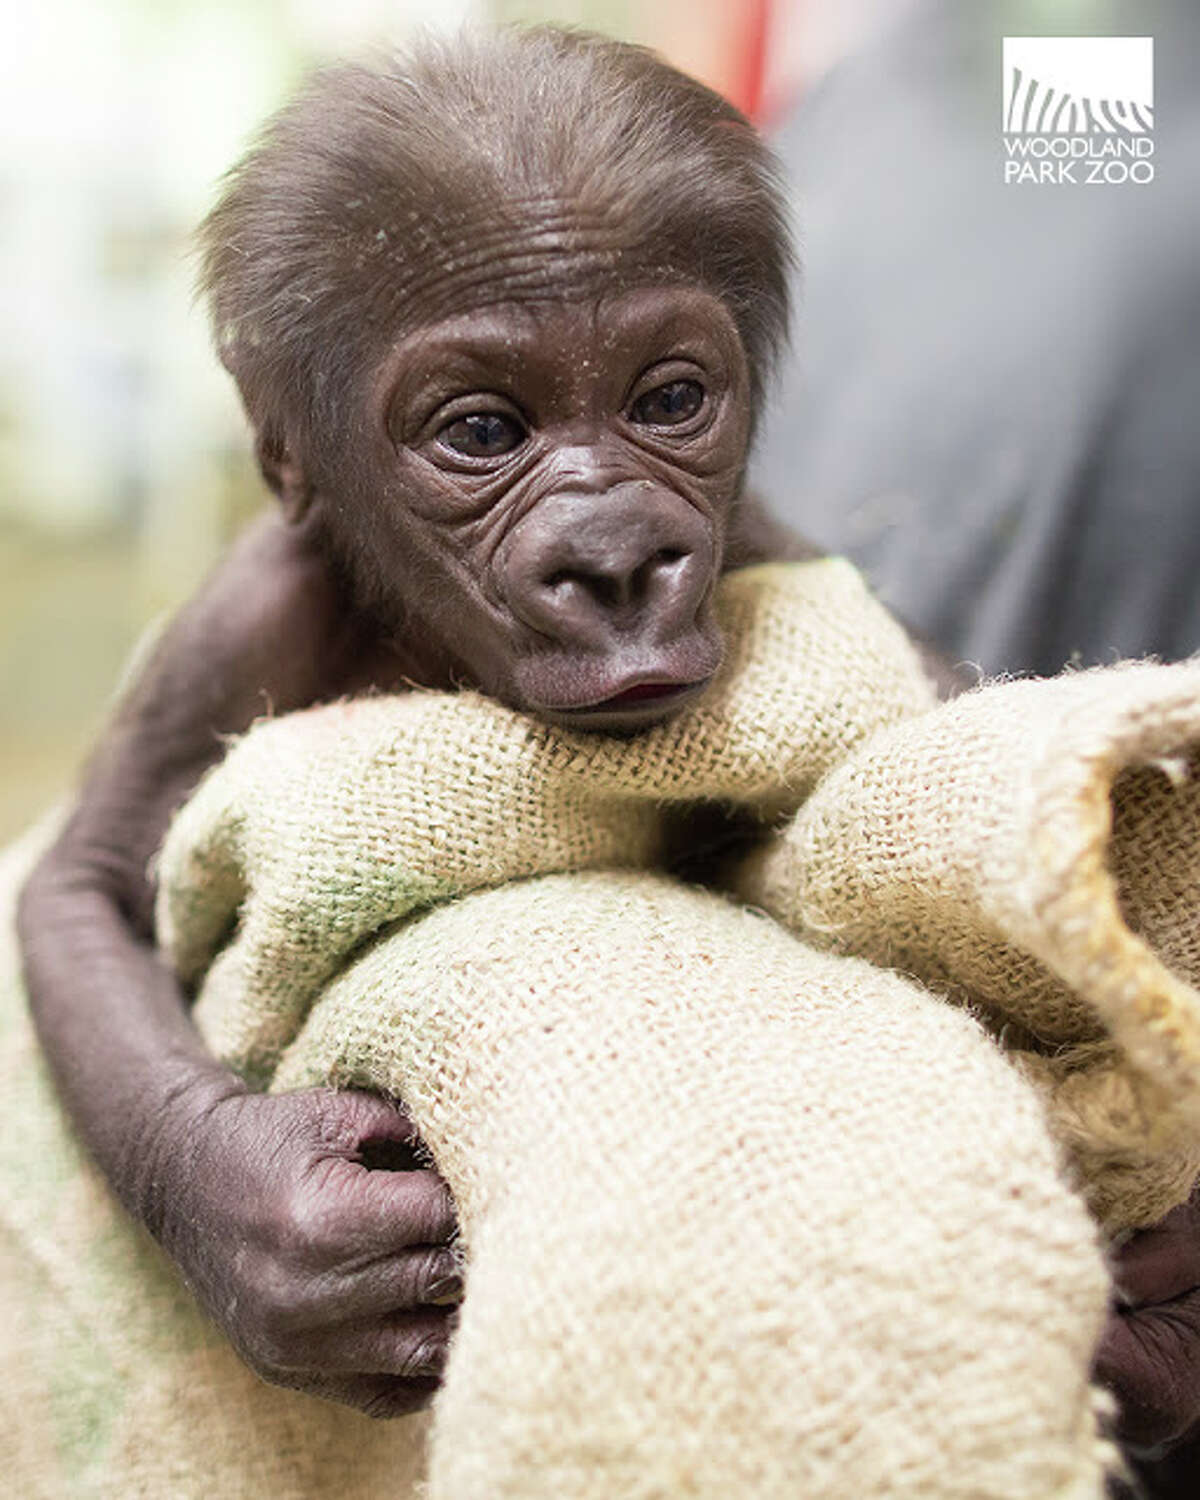 An infant gorilla born at Seattle's Woodland Park Zoo on Nov. 20, pictured a month after her birth in a provided photo.